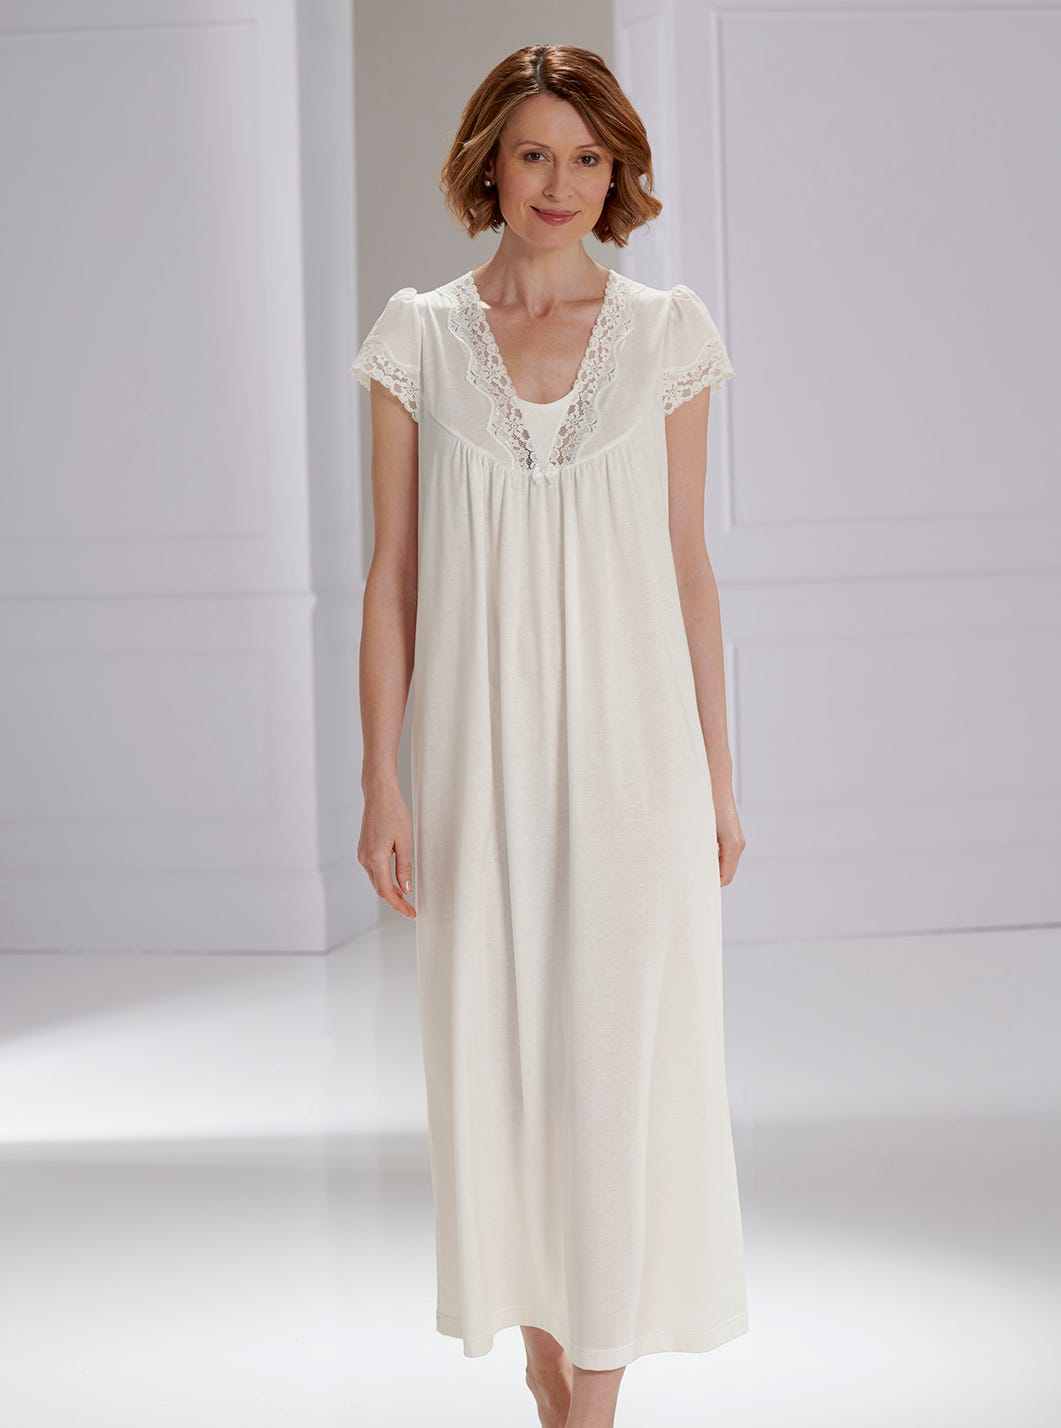 Lace-trimmed Cotton Nightdress